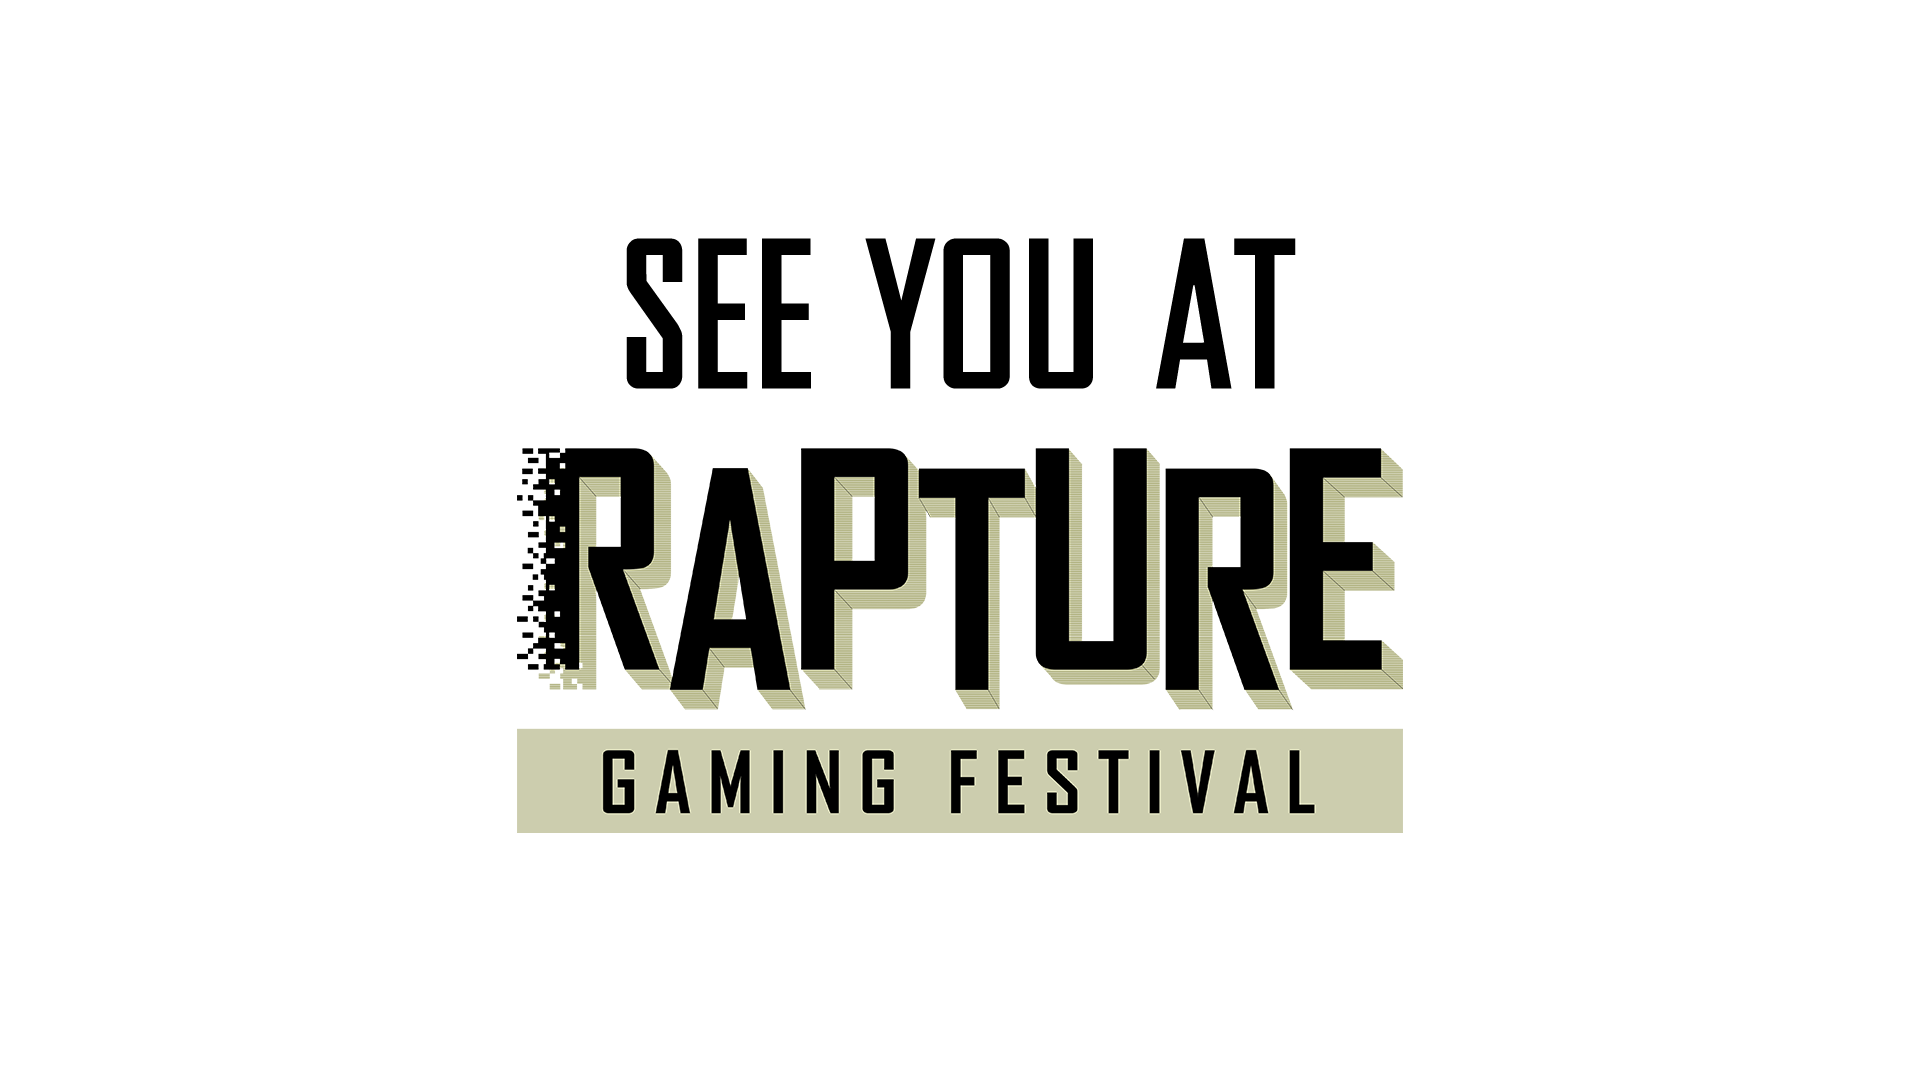 f4f0c9709fb And if you are interested in volunteering at the biggest gaming festival in  Cardiff and Wales this year